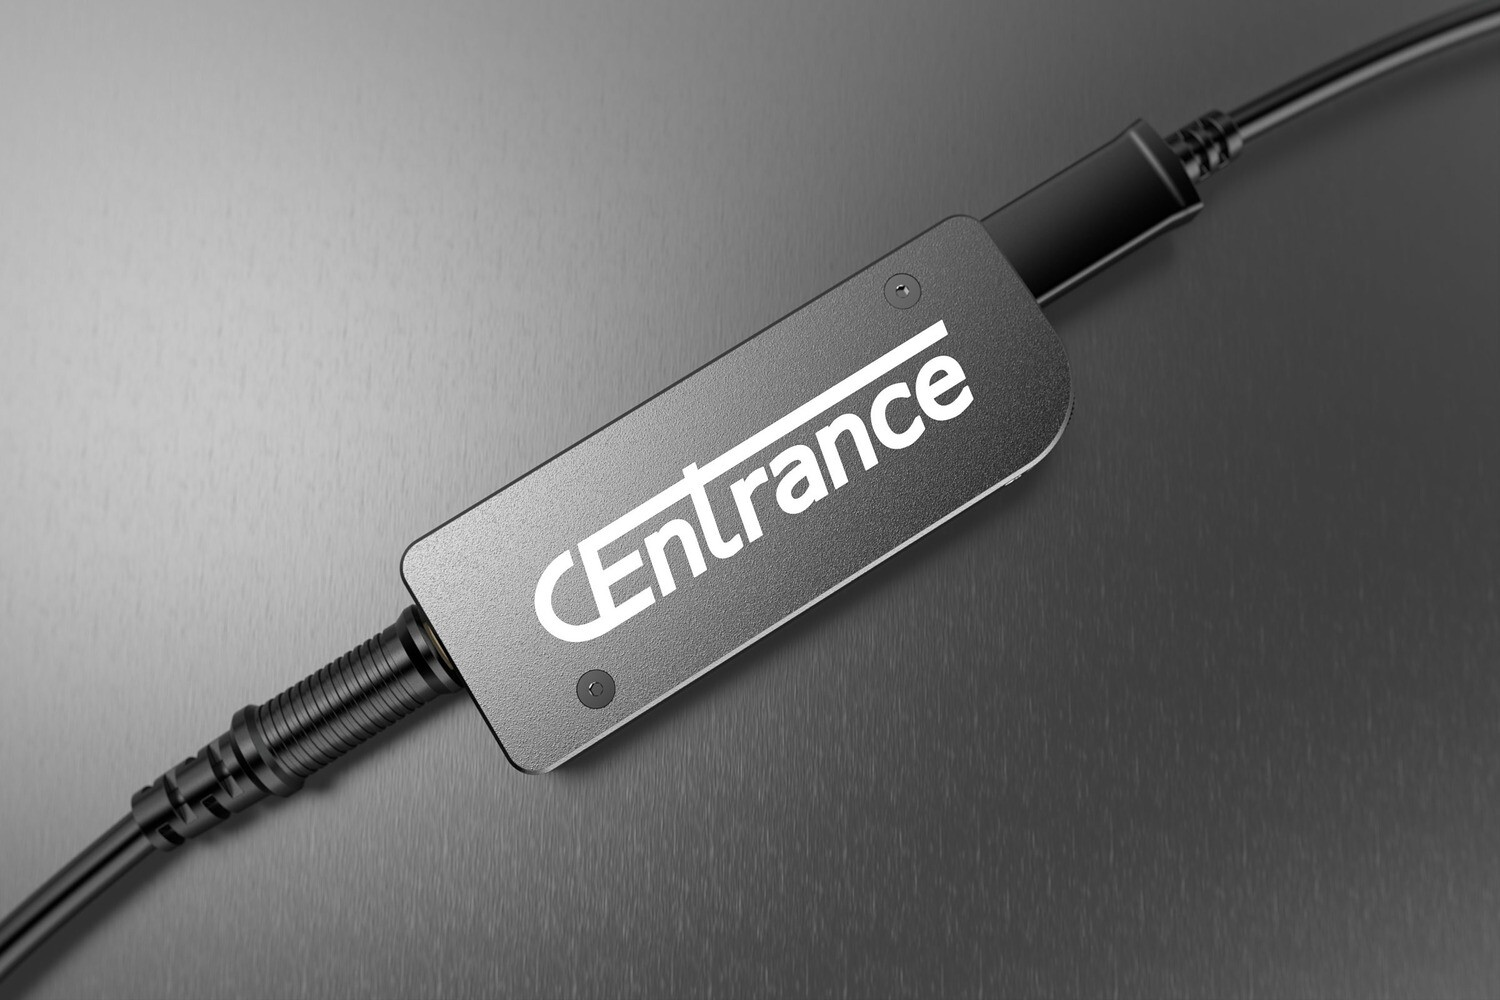 USB cable for CENTRANCE DAC PORTABLE